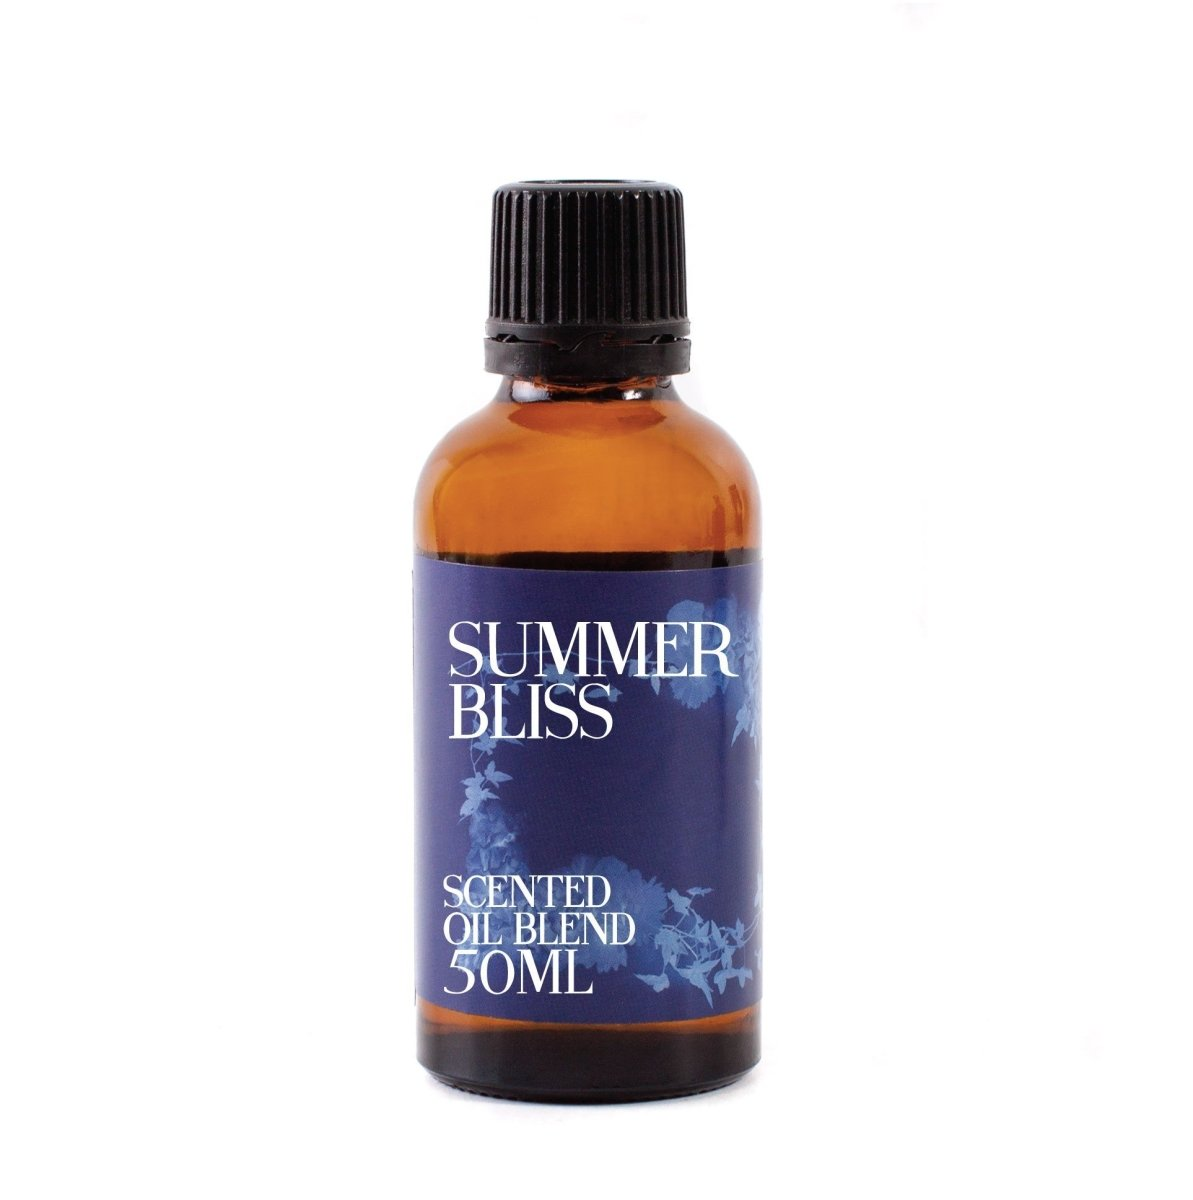 Summer Bliss - Scented Oil Blend - Mystic Moments UK